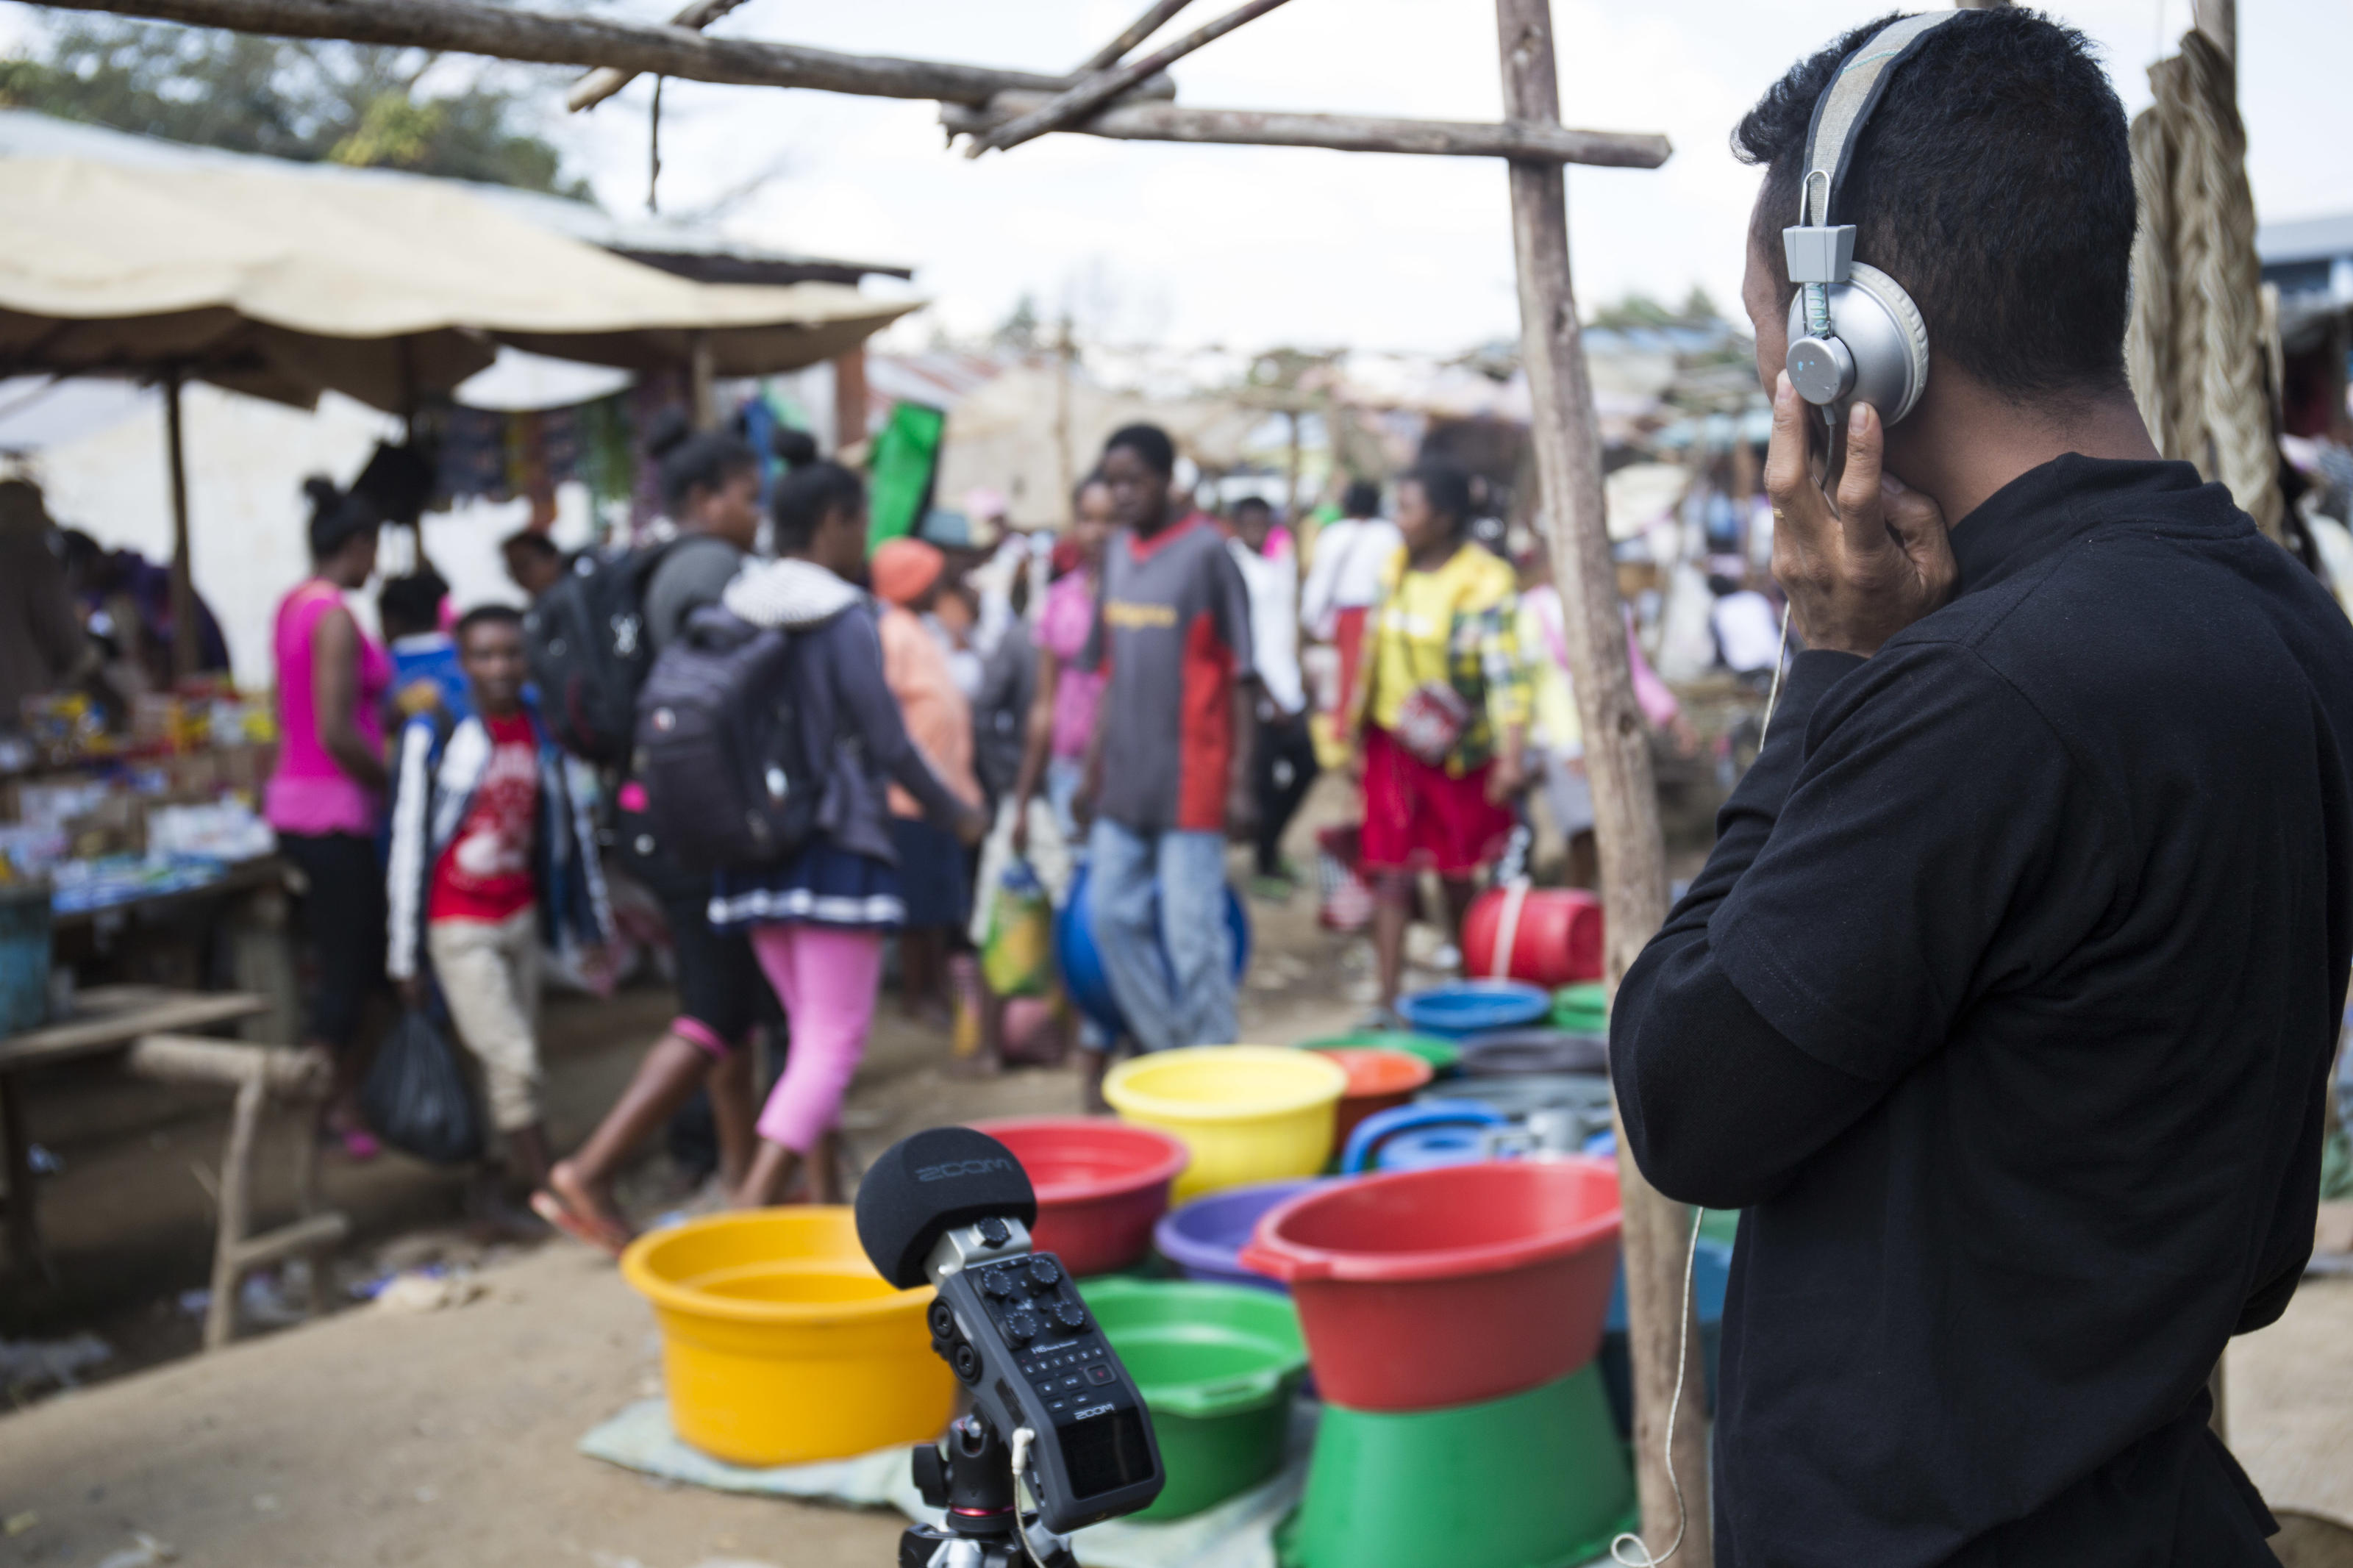 Ernest Randriarimalala, photographed while field recording sounds of a Malagasy rural market in Ambohidronono village, Ambohidronono commune, Moramanga district, Madagascar. August 2018.